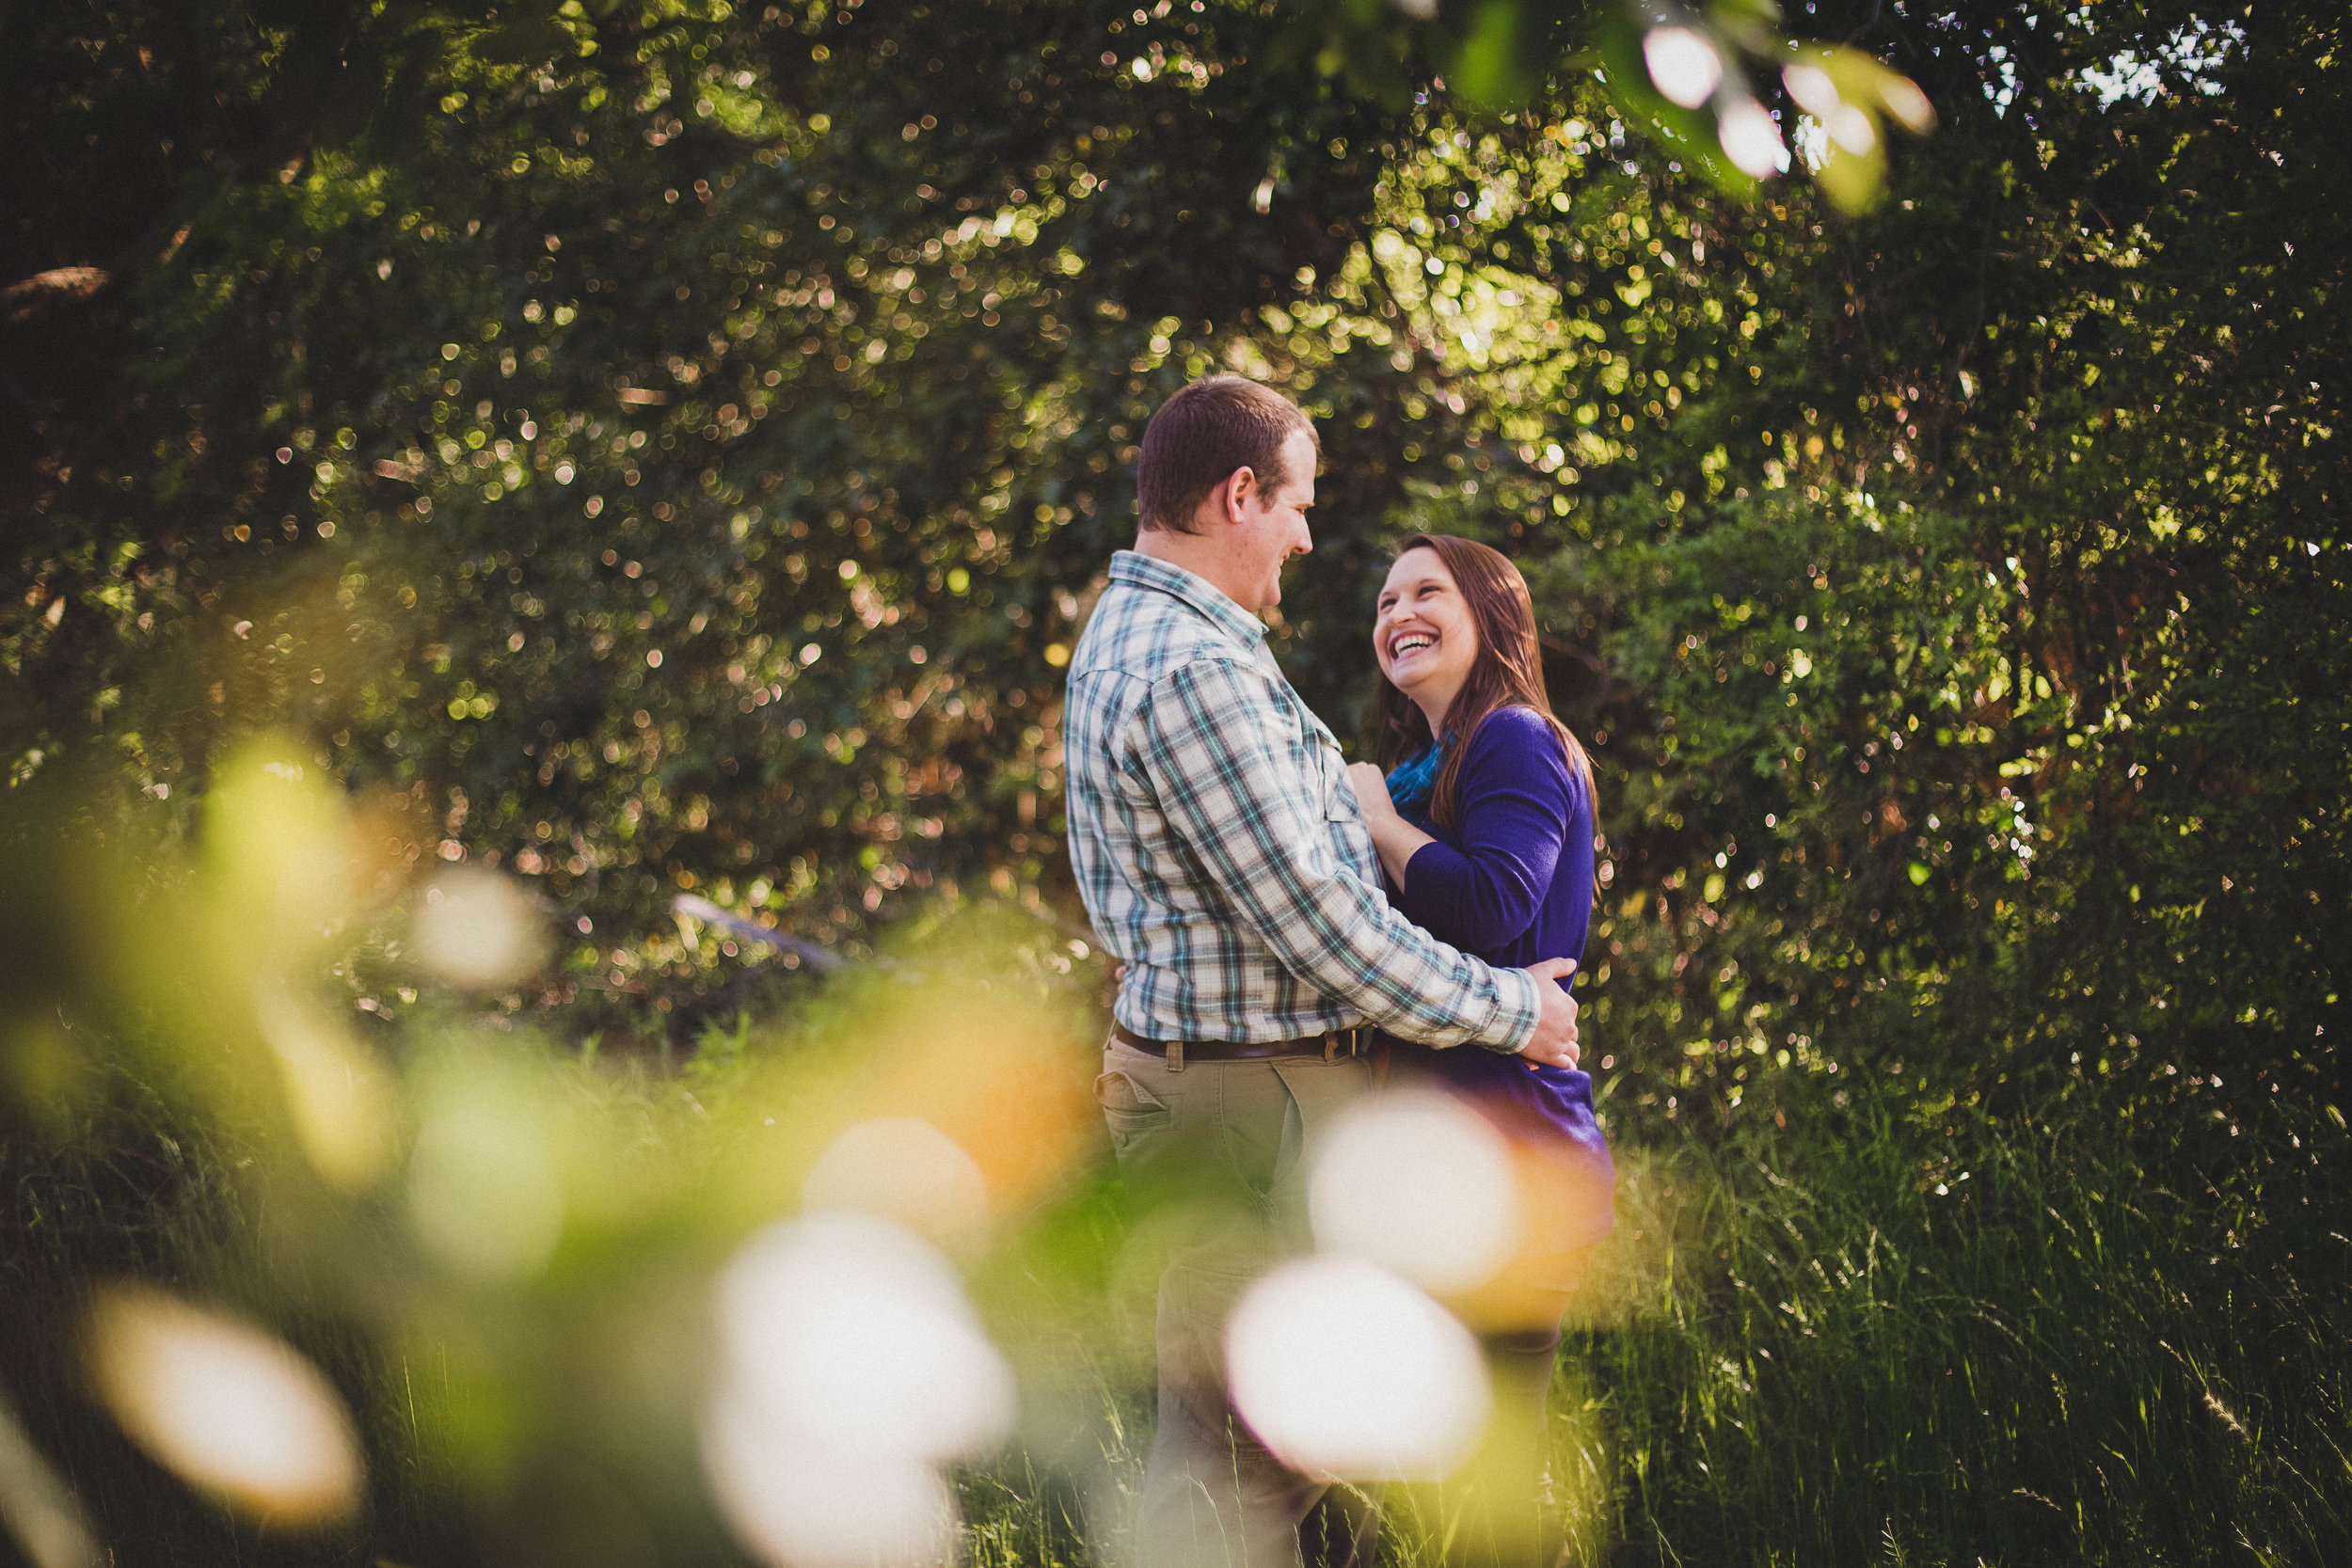 Emily is so much fun to work with. - Her candid shots truly capture normal life. We love our photos and feel like they really show who we are as a couple. I absolutely would recommend Emily to anyone who asked!-Jessica C.